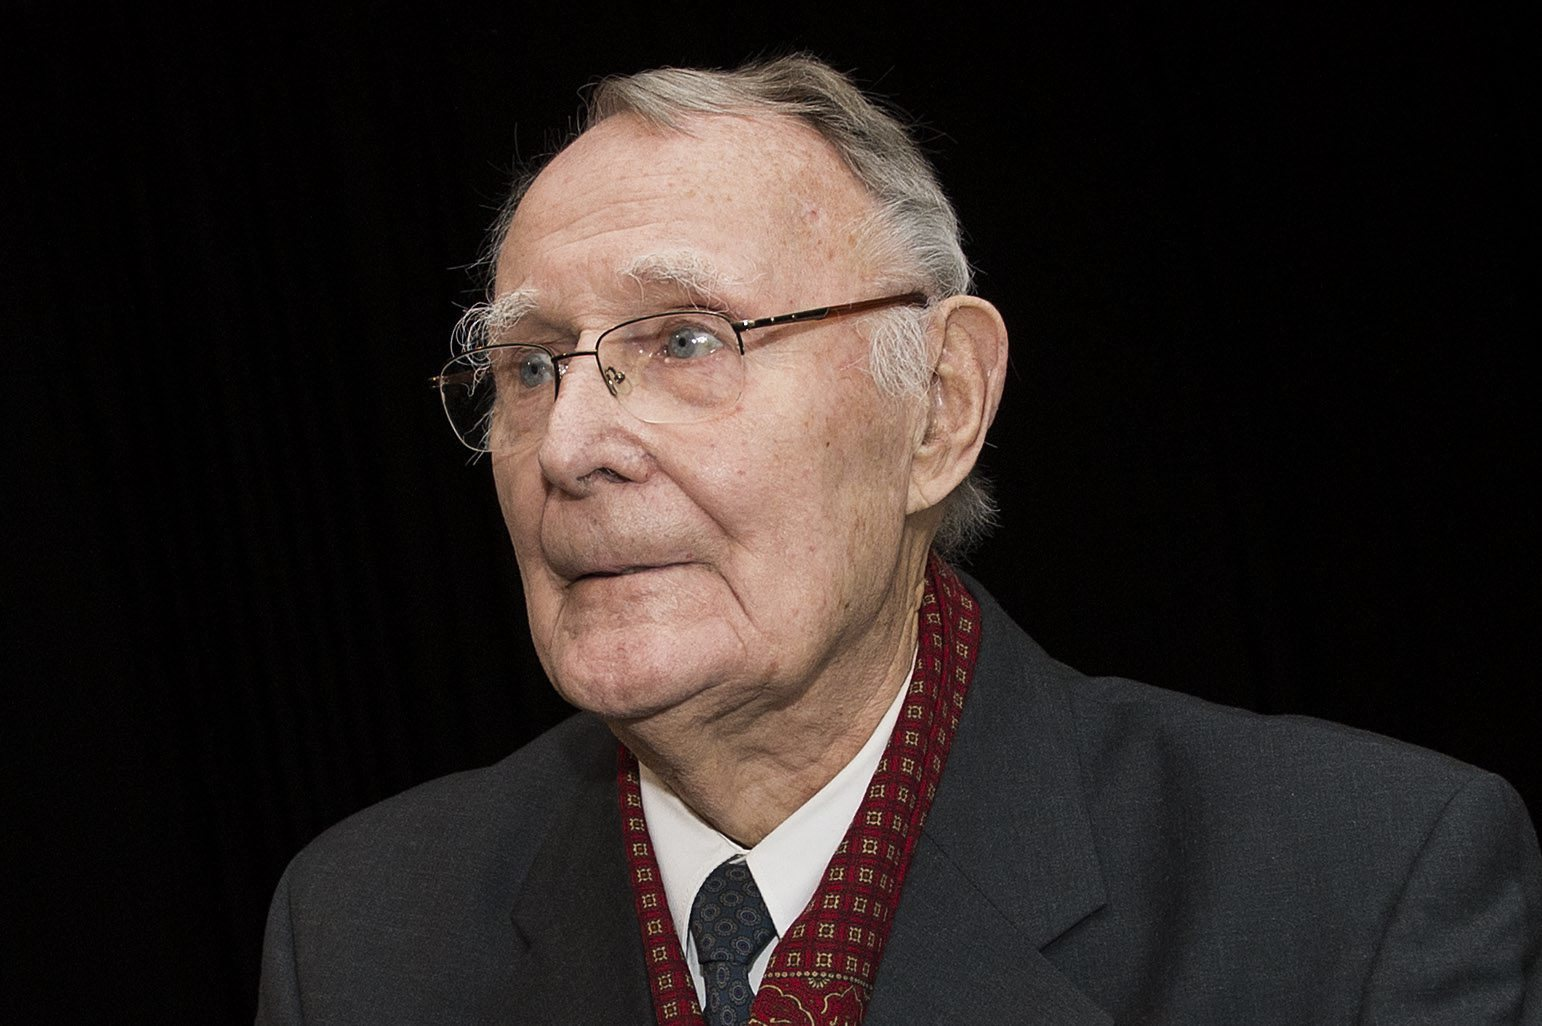 ingvar kamprad and ikea case Ingvar kamprad and ikea case solution, traces the development of a swedish furniture retailer under the leadership of an innovative and unconventional entrepreneur whose approaches define the na.